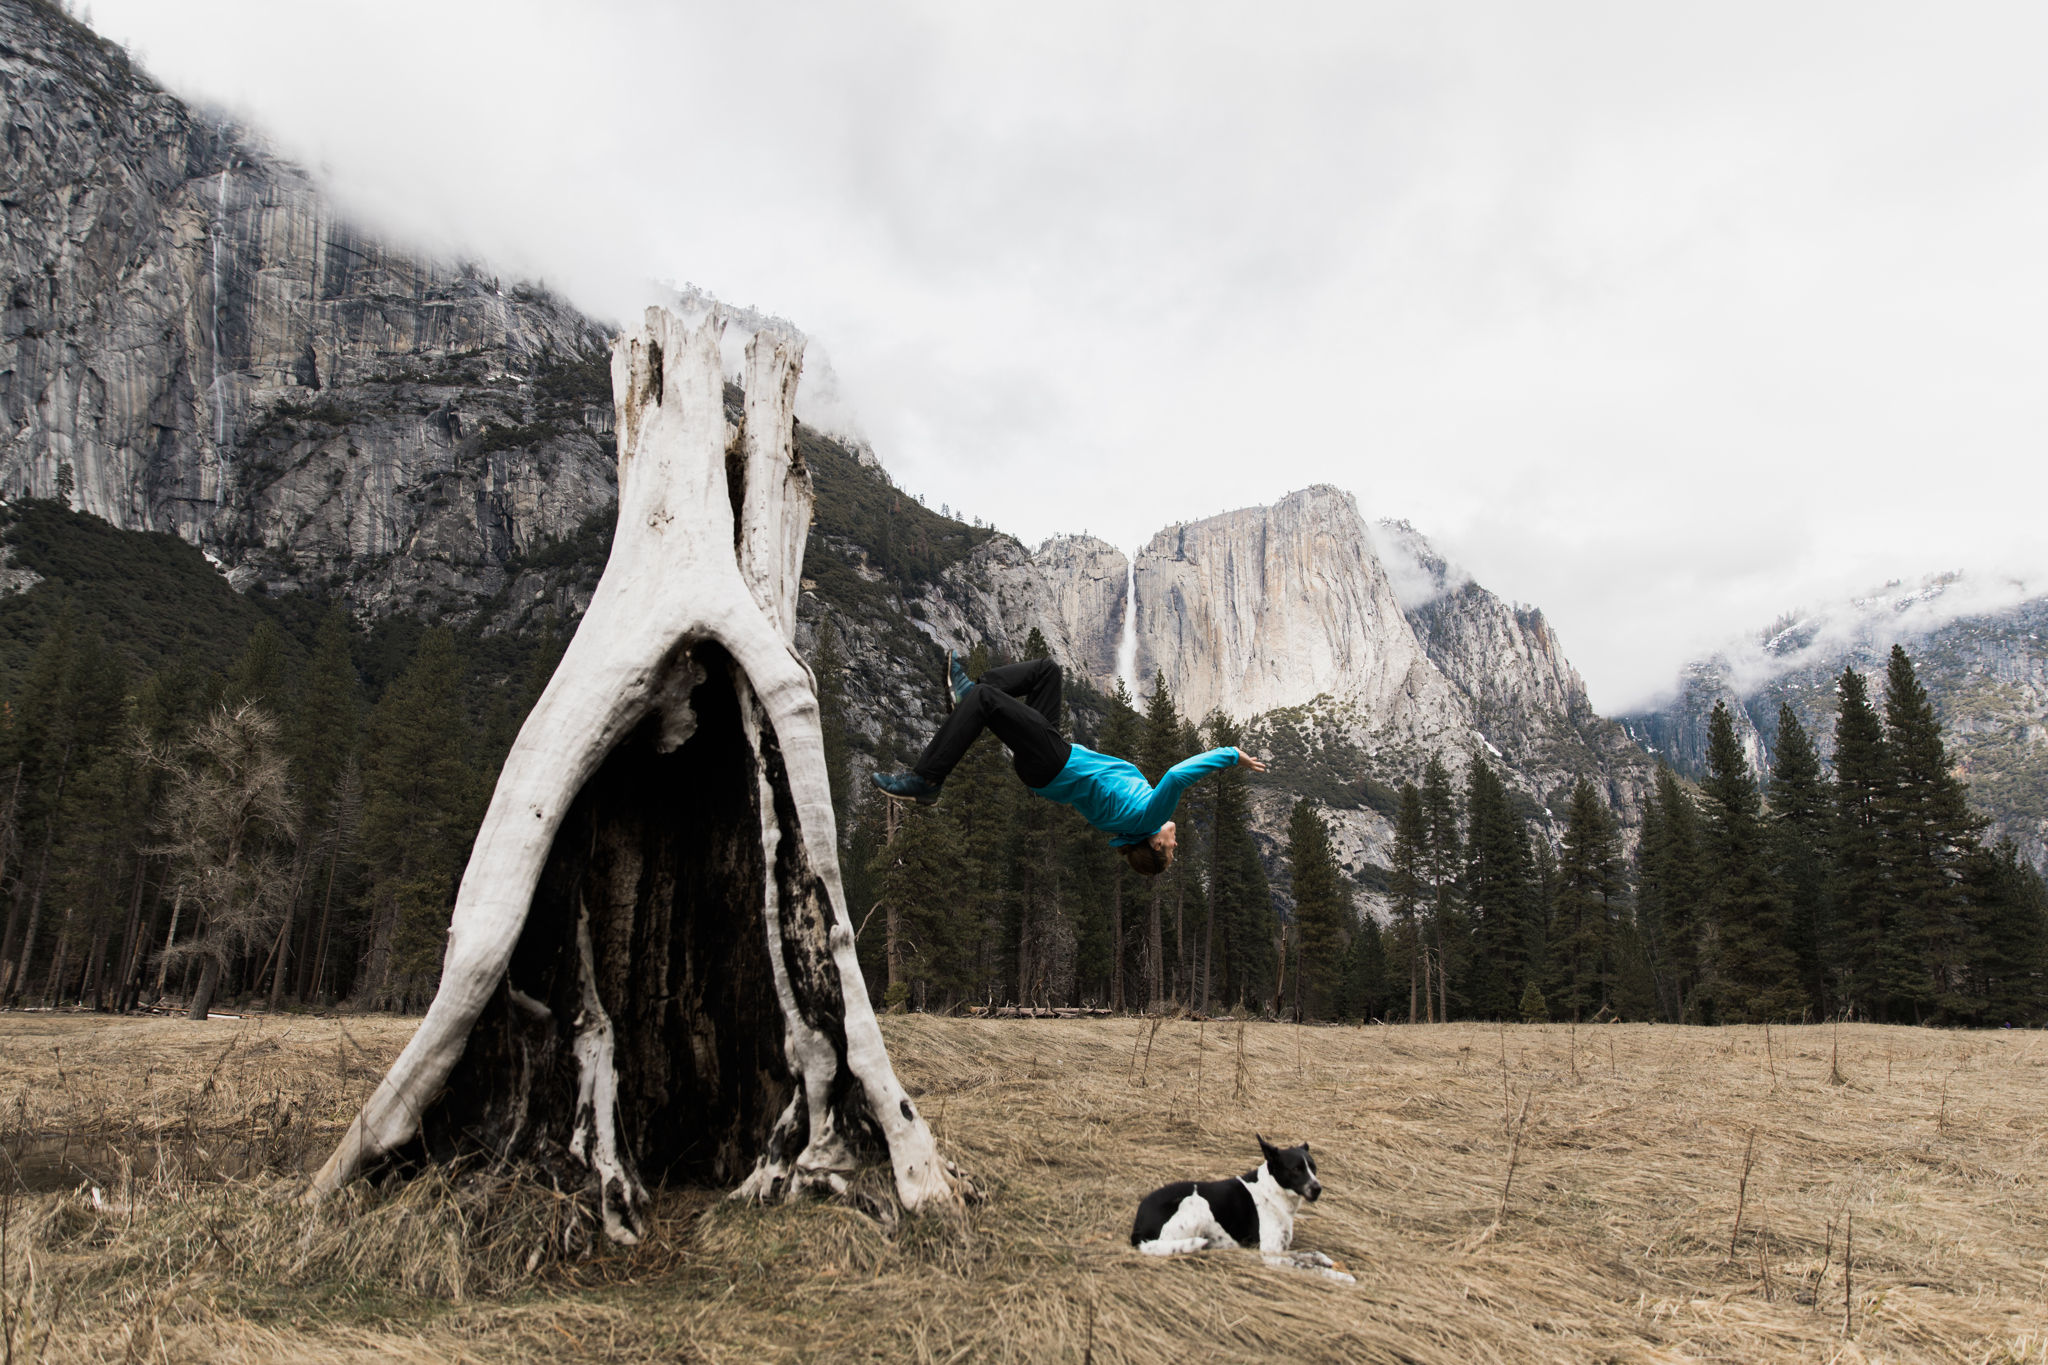 exploring yosemite national park | utah and california adventure elopement photographers | the hearnes adventure photography | www.thehearnes.com